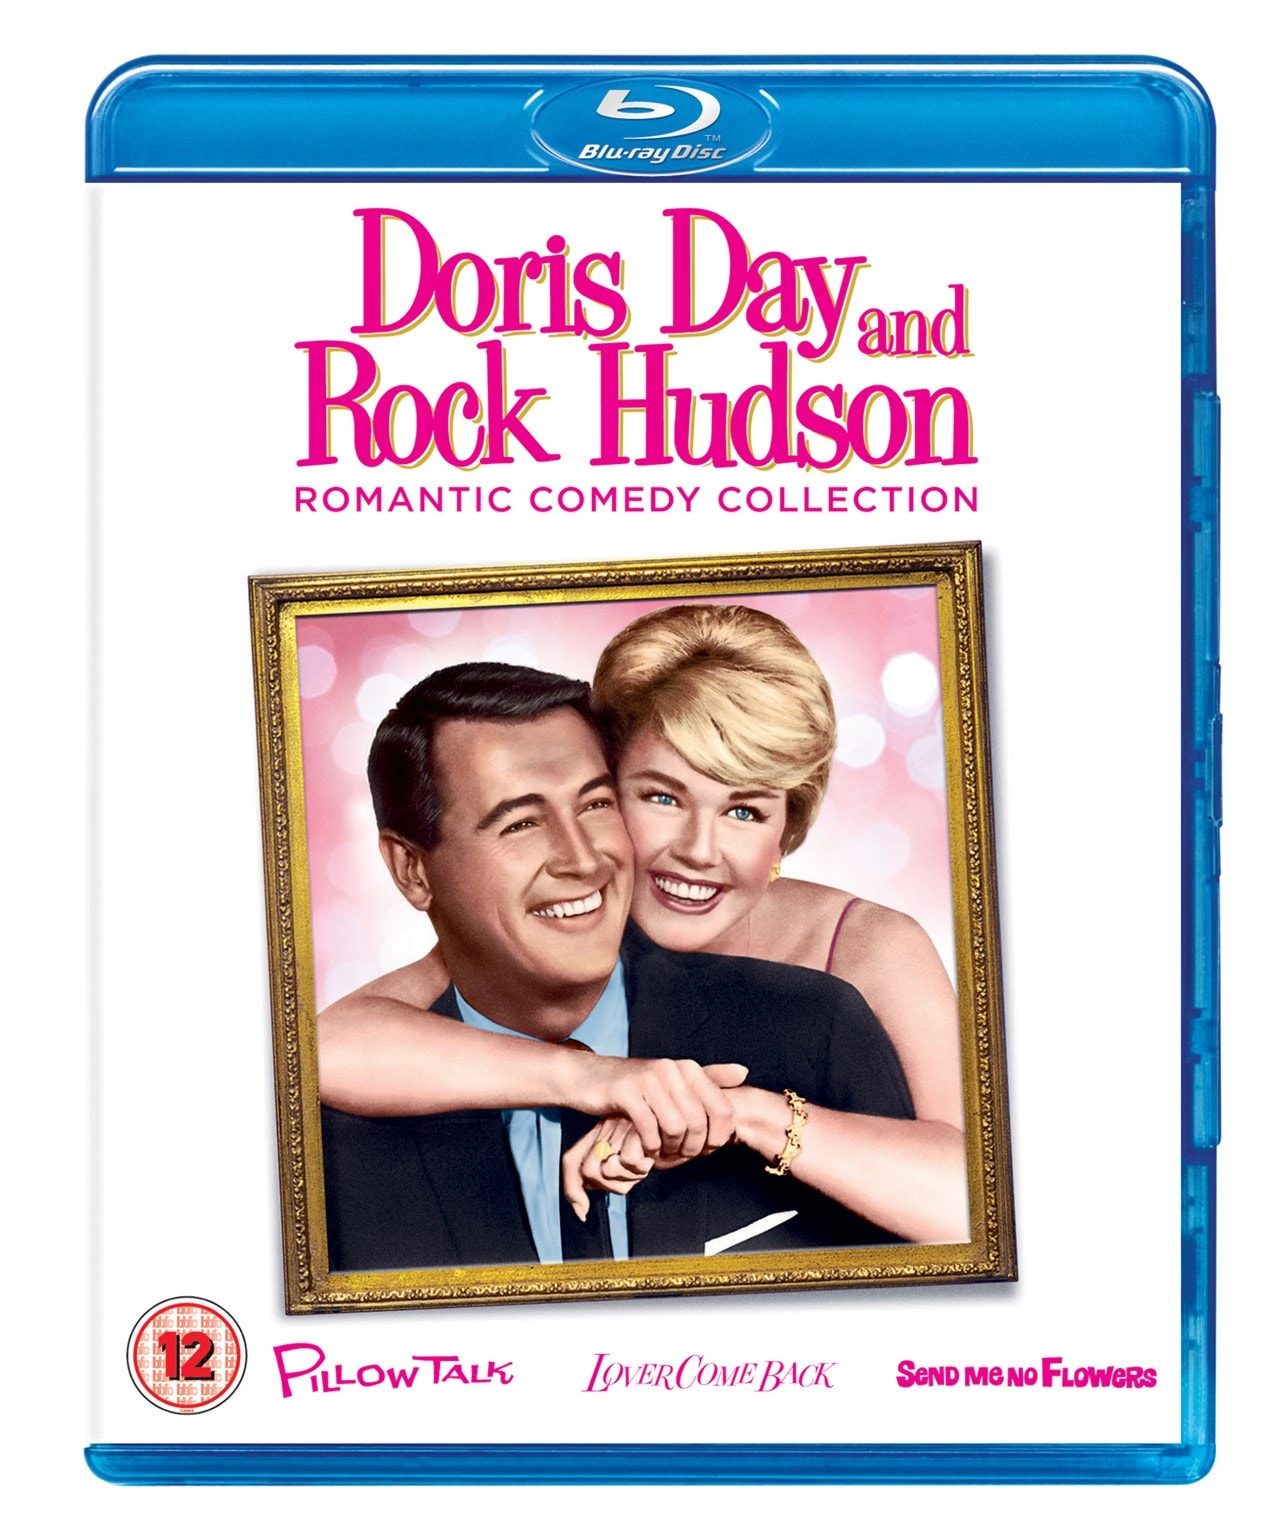 Doris Day and Rock Hudson Romantic Comedy Collection - 1